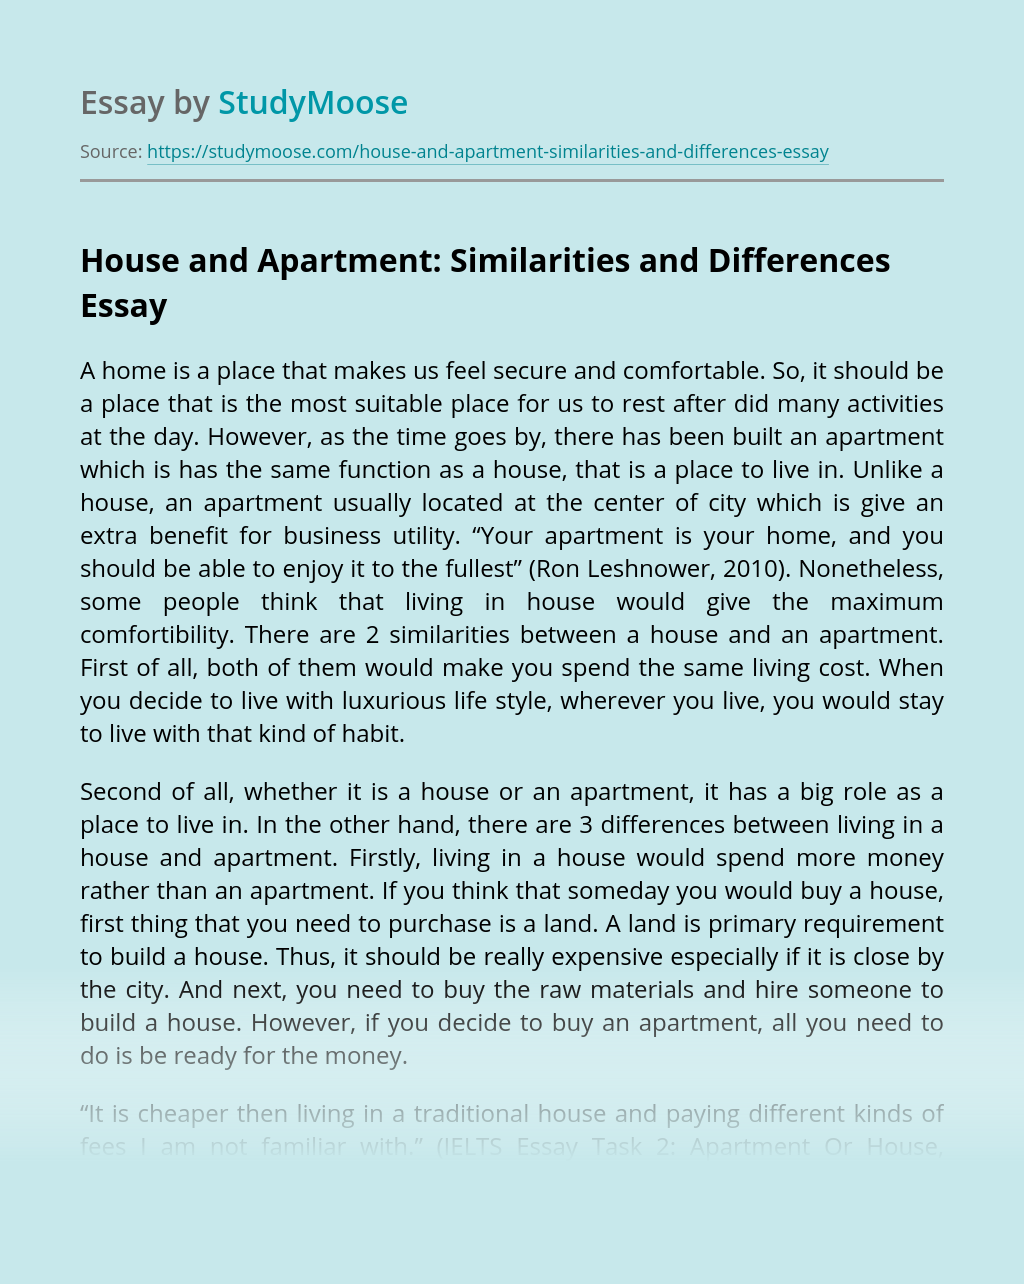 House and Apartment: Similarities and Differences